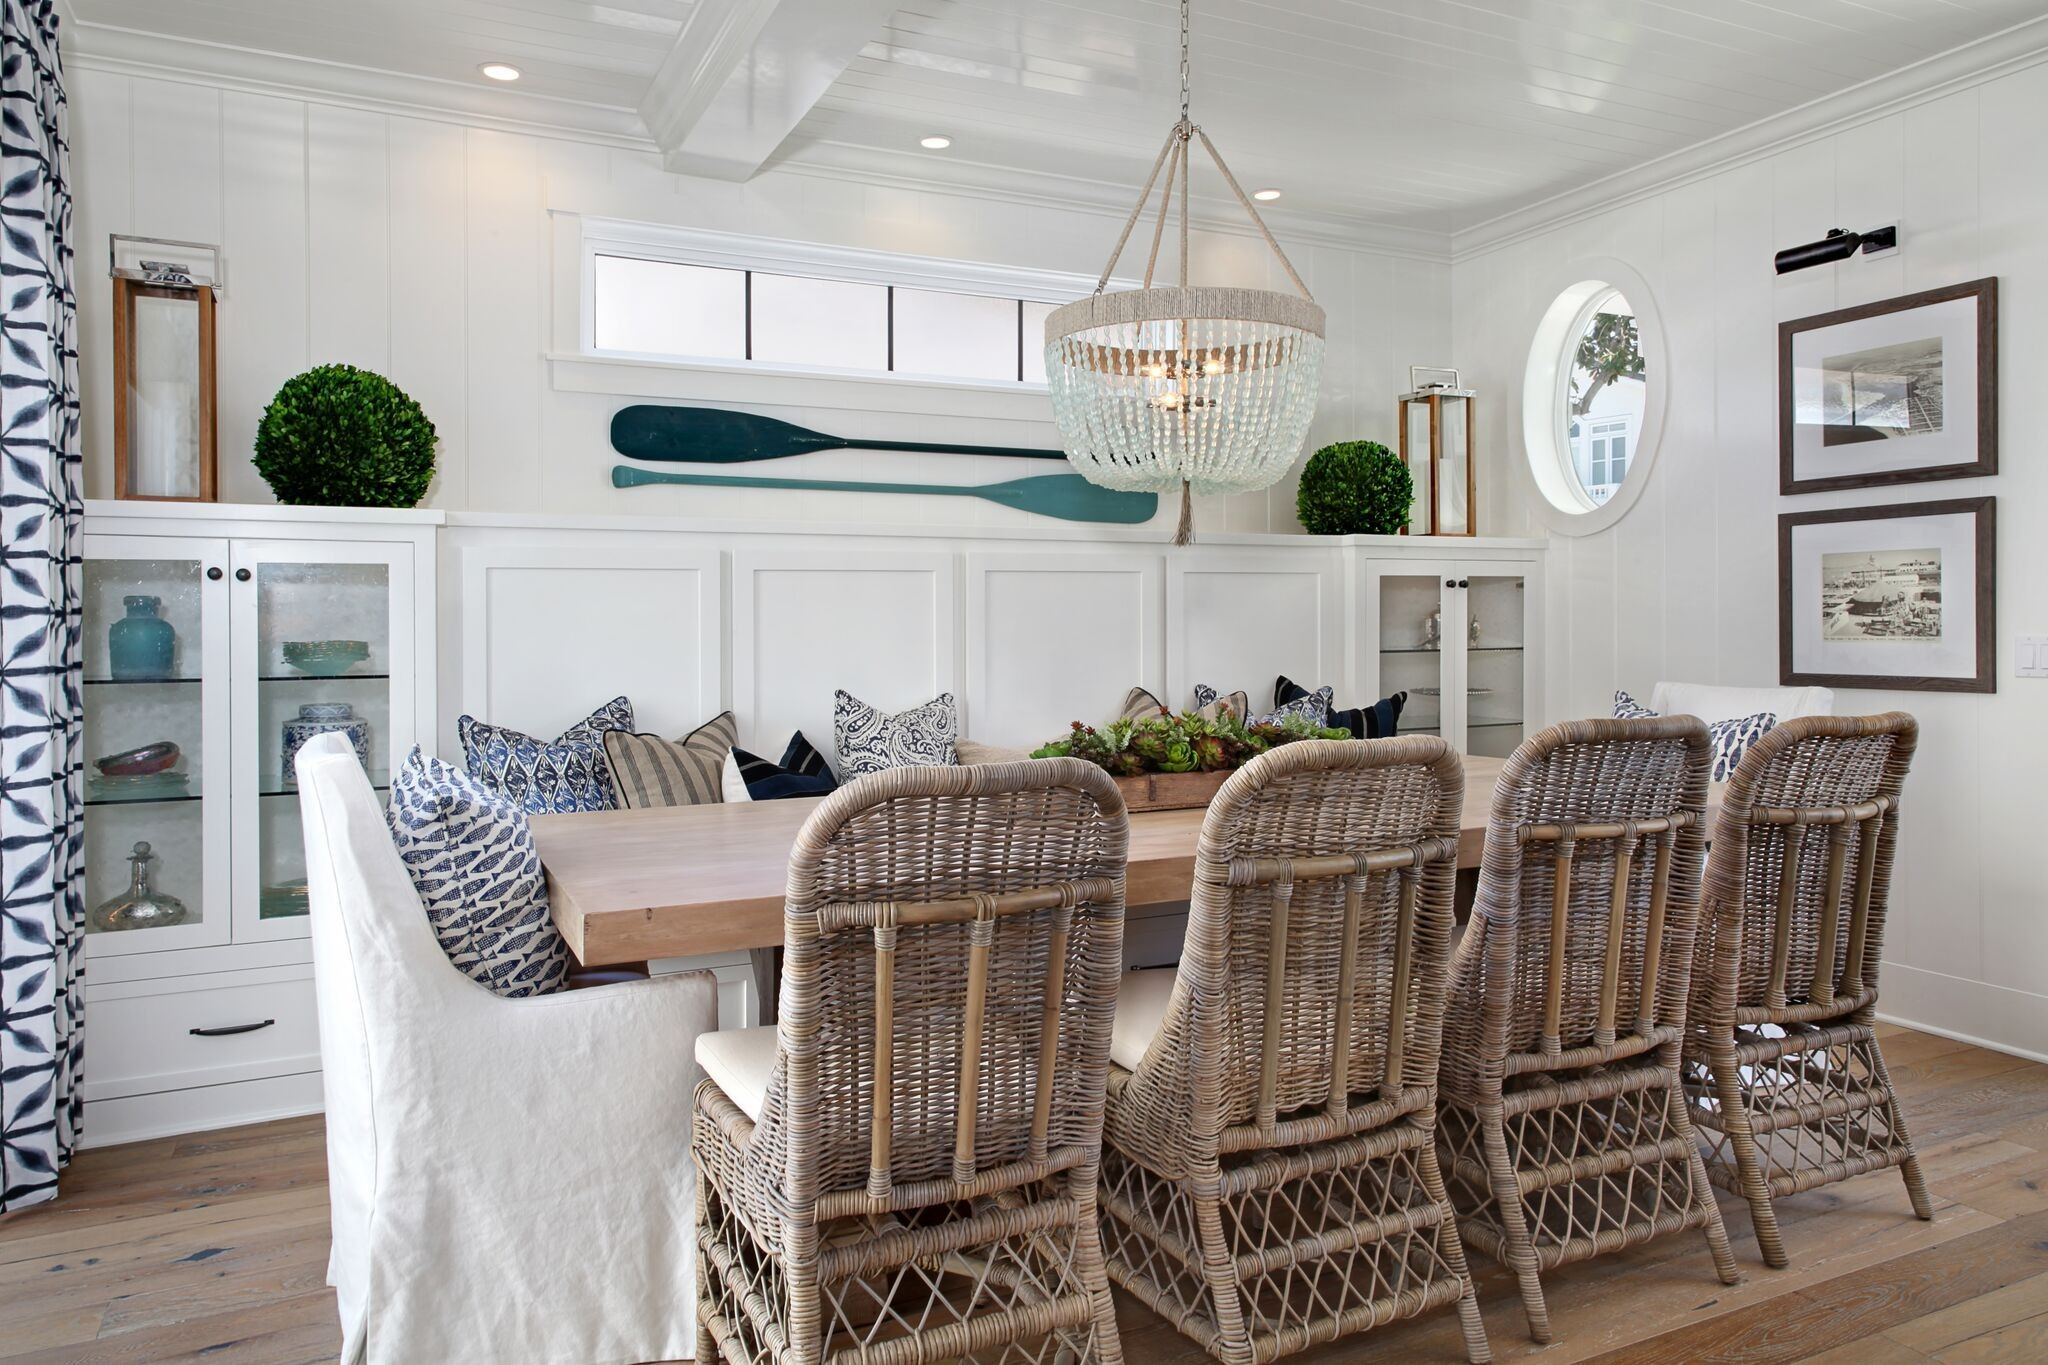 6 Tips for Decorating with Coastal Style Year Round - Decorating - Lonny